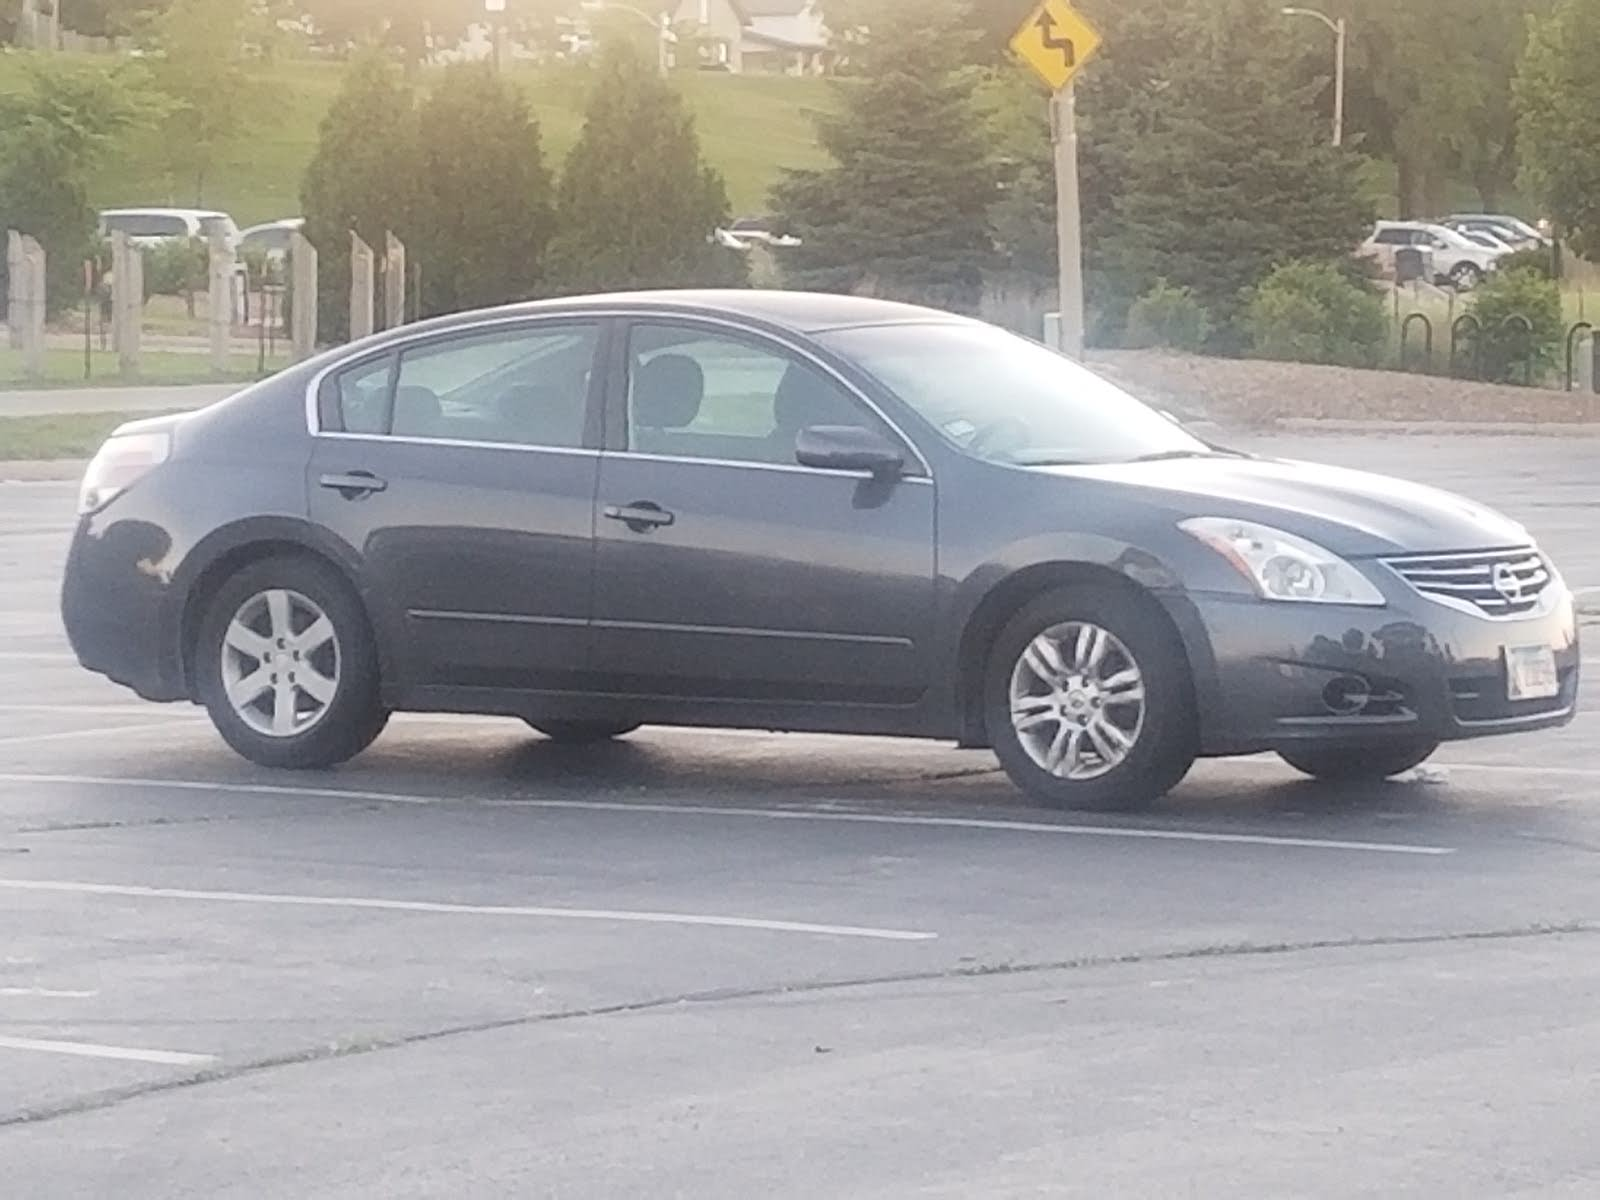 Cart Was Vibrating Very Hard You Felt The Vibrations. What Could Cause This  Transaction With My Nissan Altima 2010 2.5 SL 4 Door Car